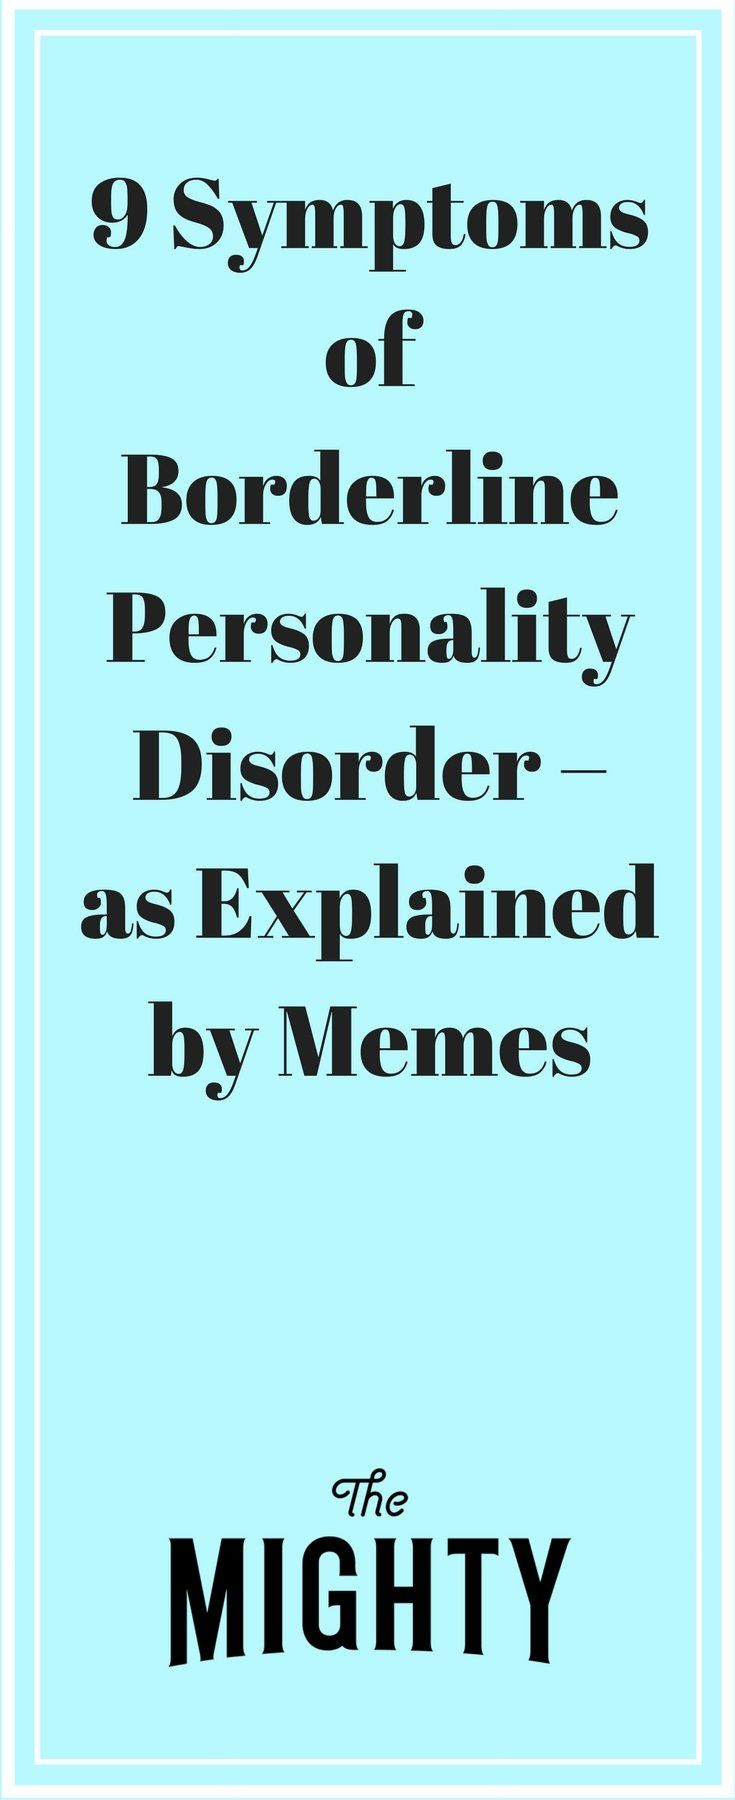 9 Symptoms of Borderline Personality Disorder as Explained by Memes | The Mighty